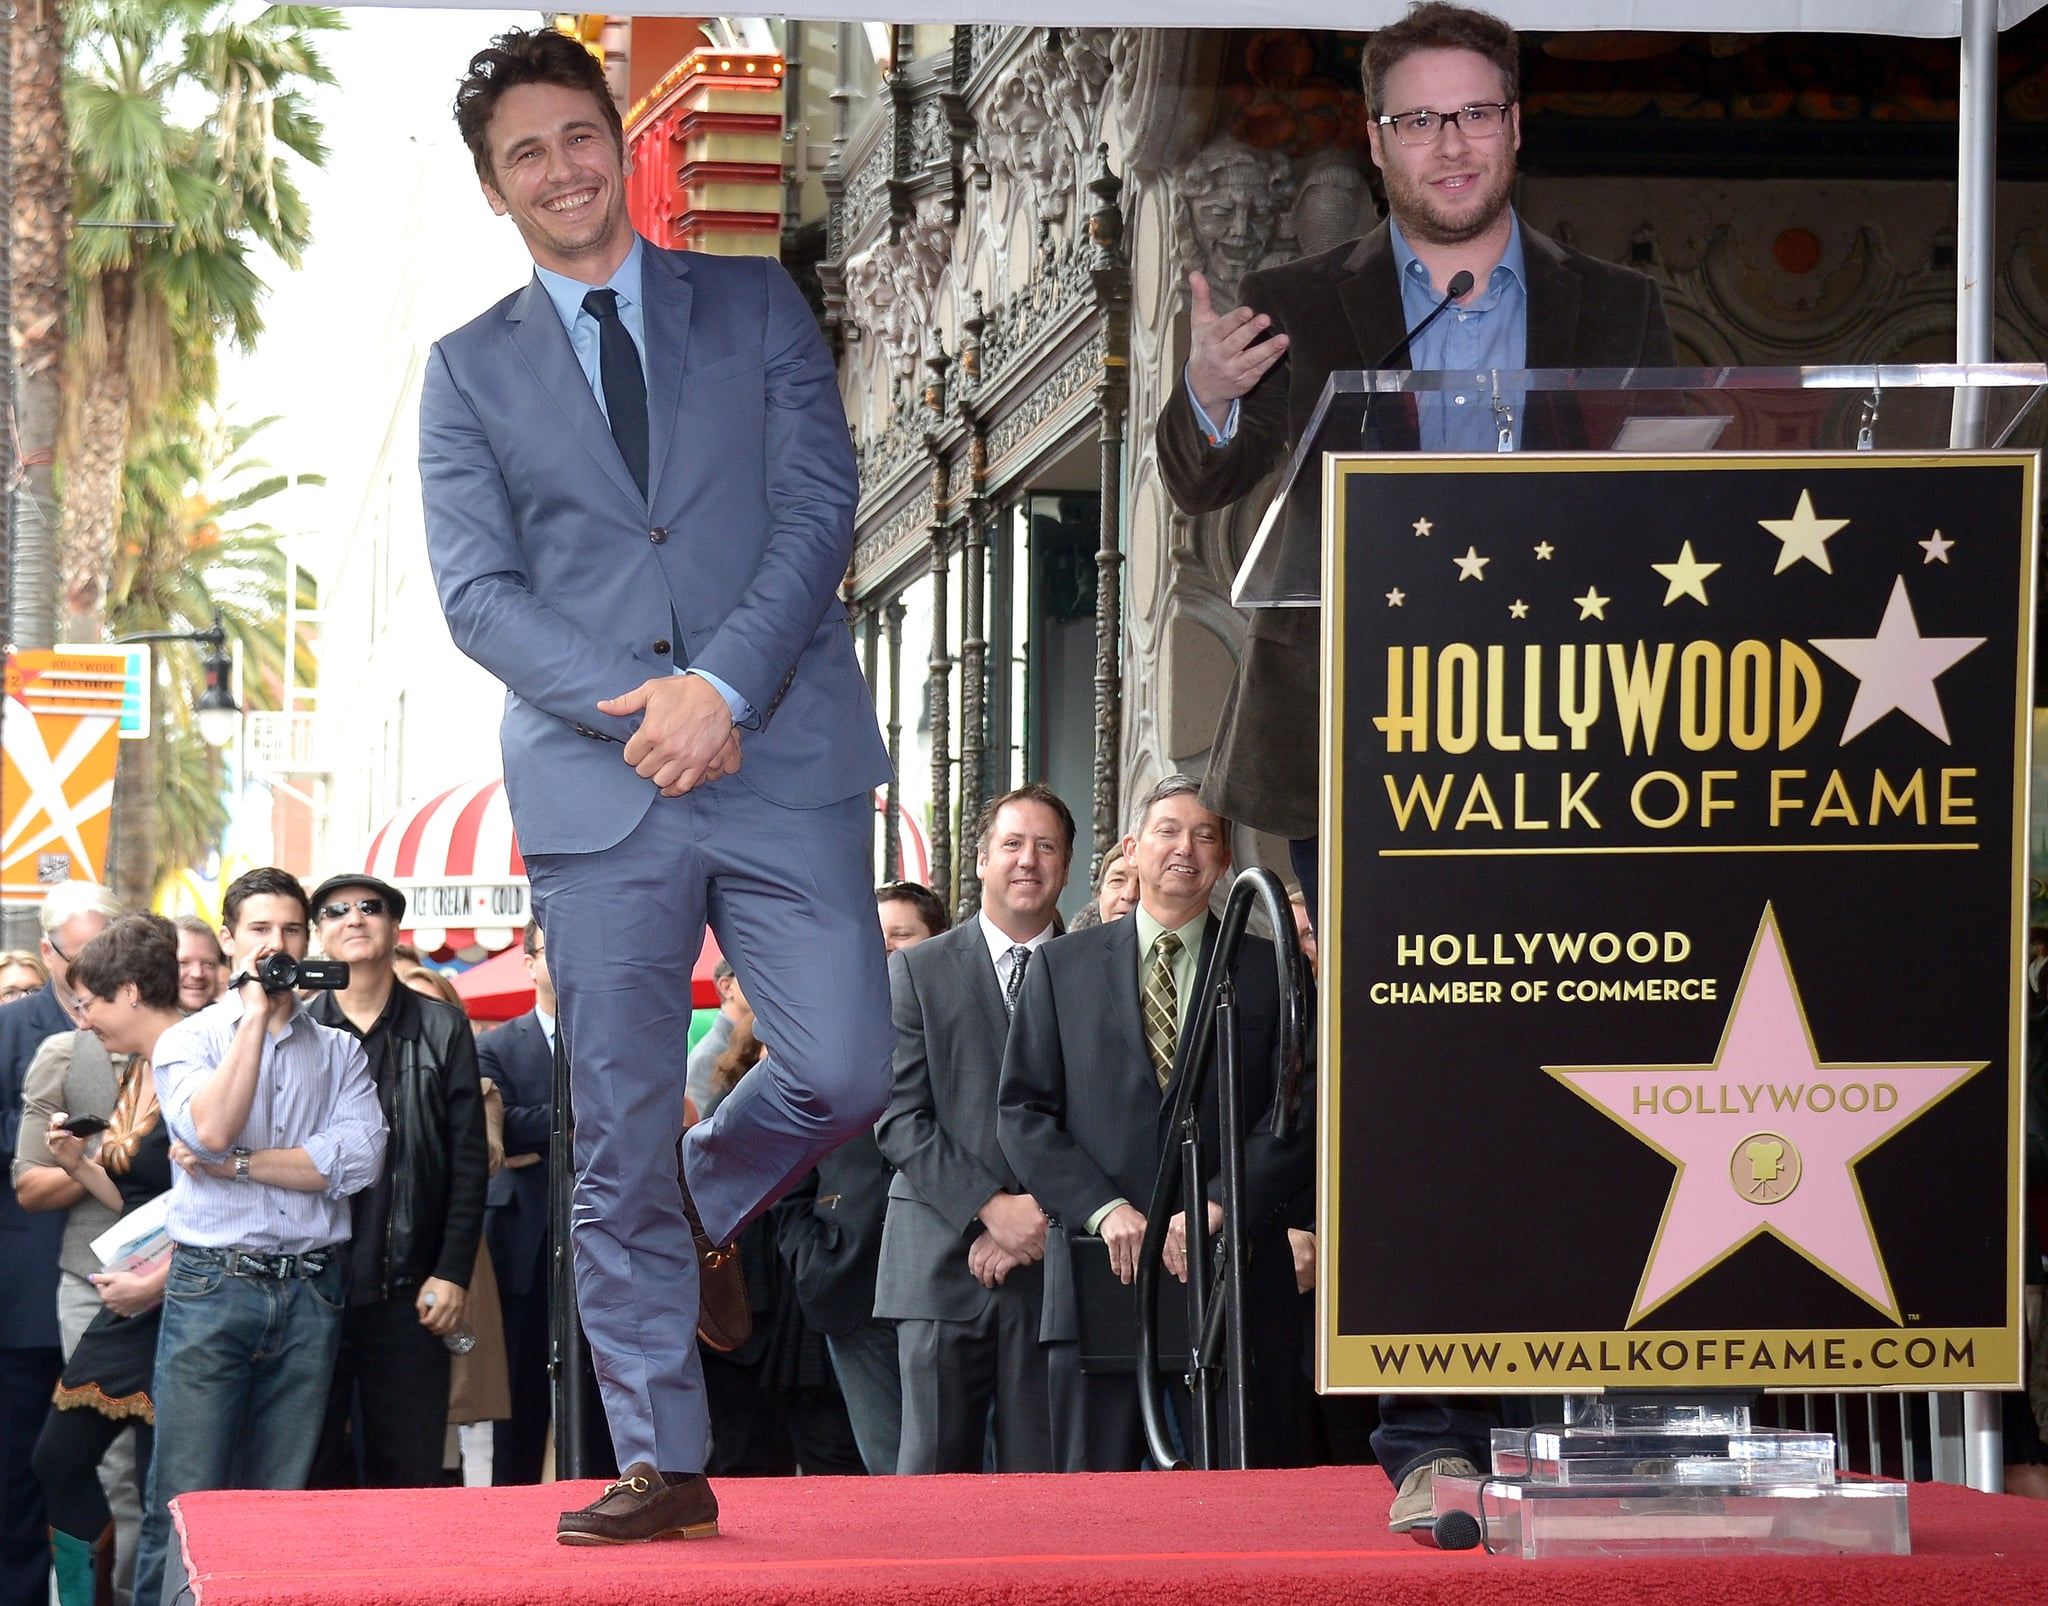 James Franco Accepts a Walk of Fame Star With Friends at His Side